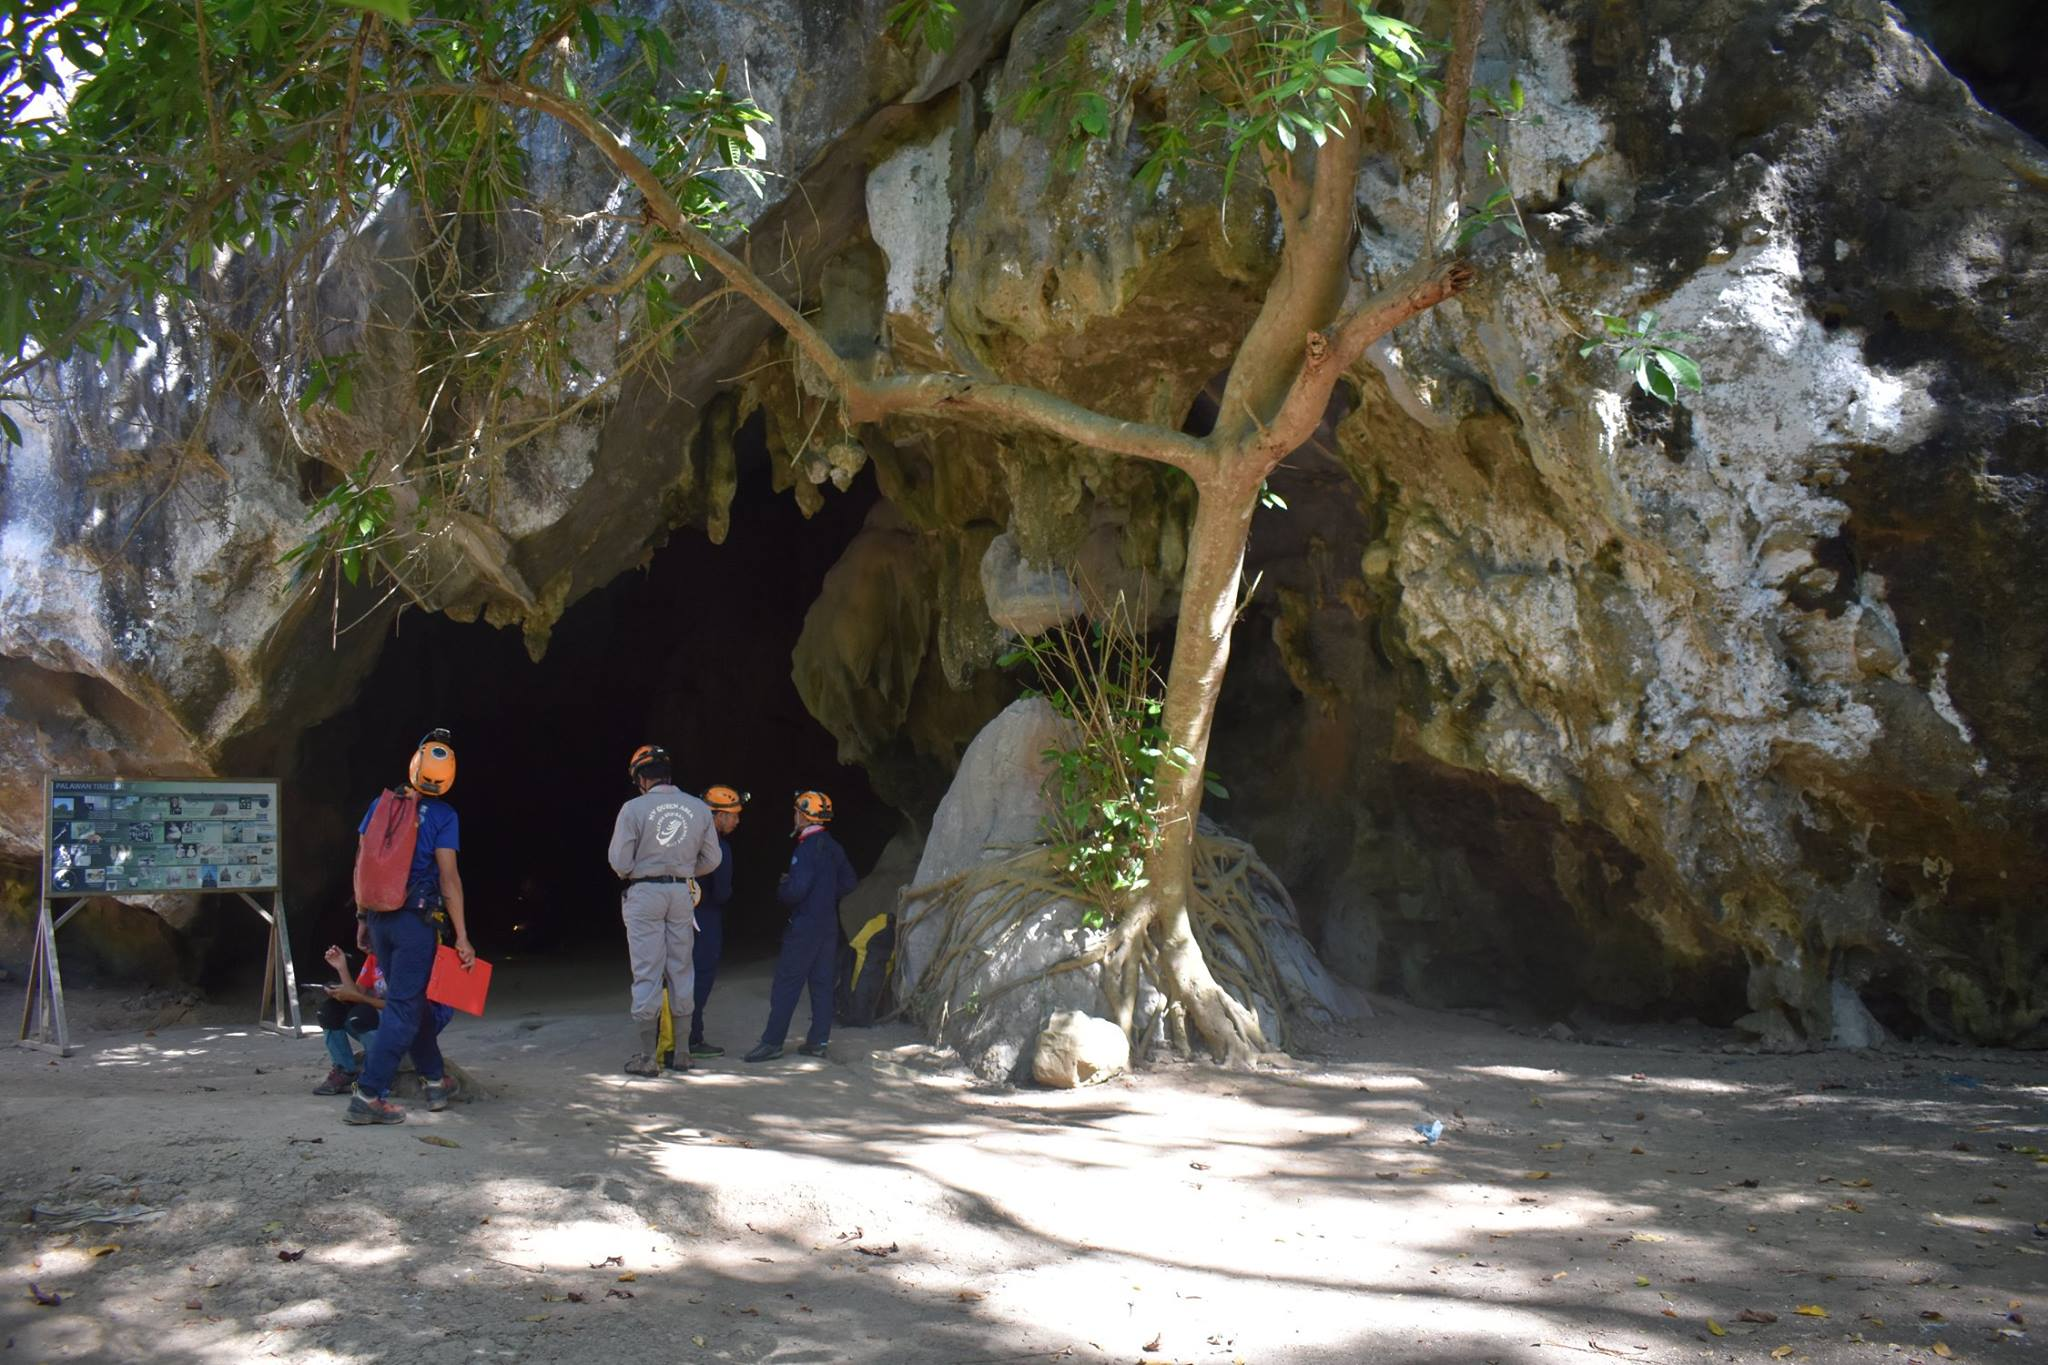 Assessment team recommends reclassification of Ille Cave